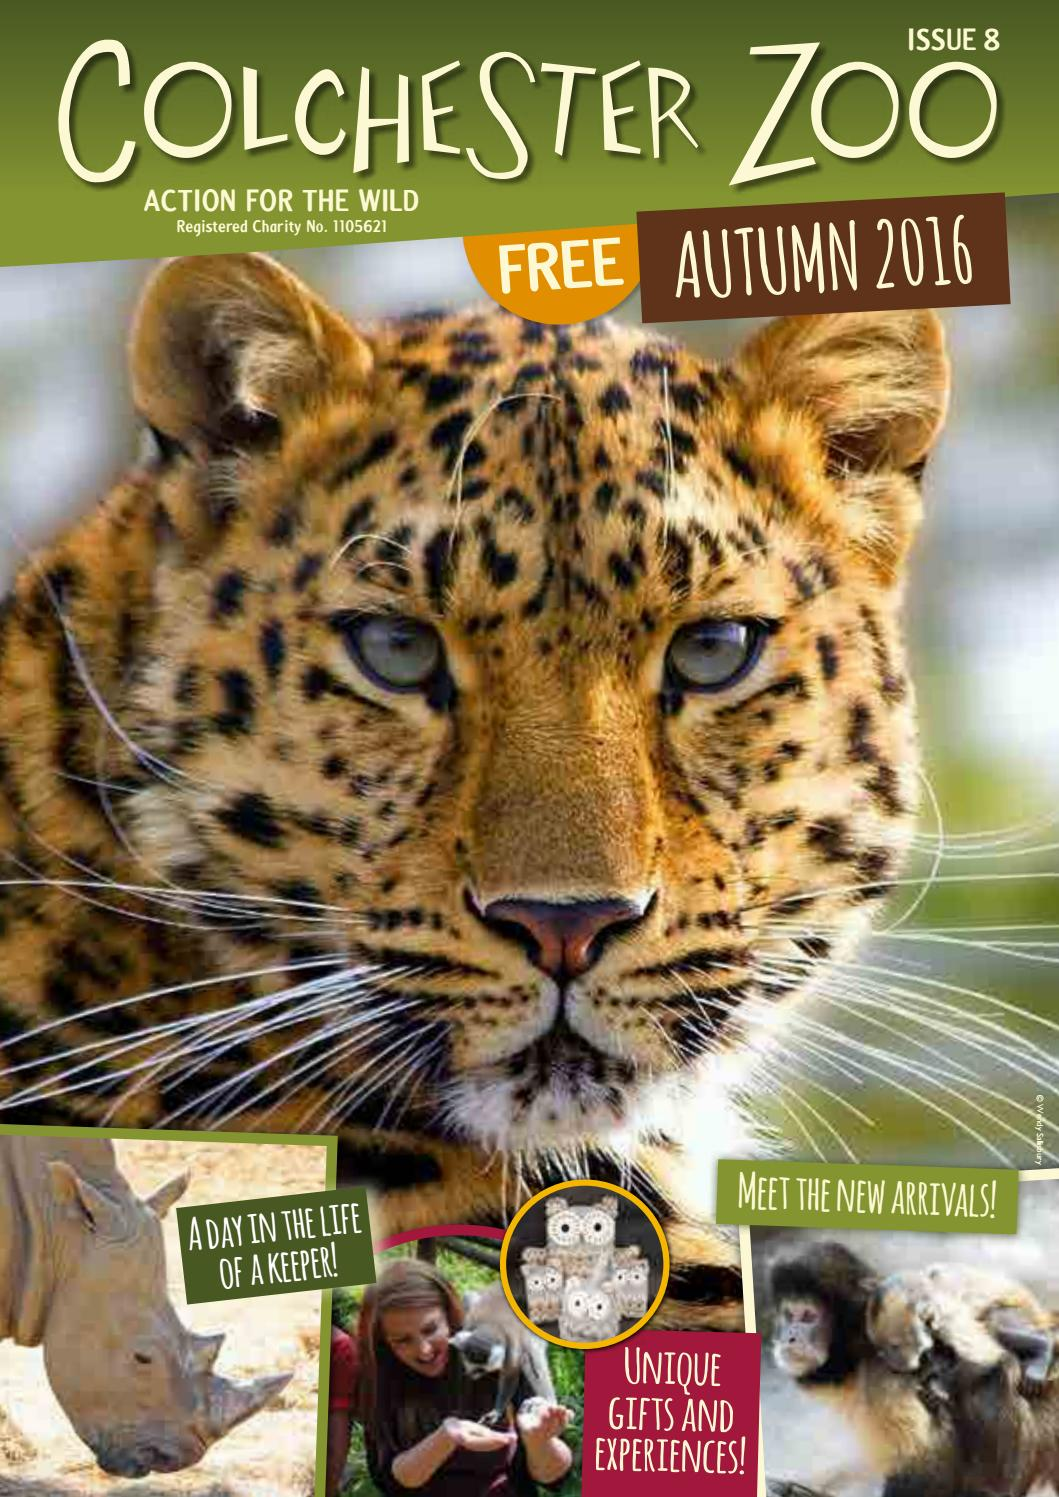 Colchester Zoo Magazine Autumn 2016 by Colchester Zoo - issuu